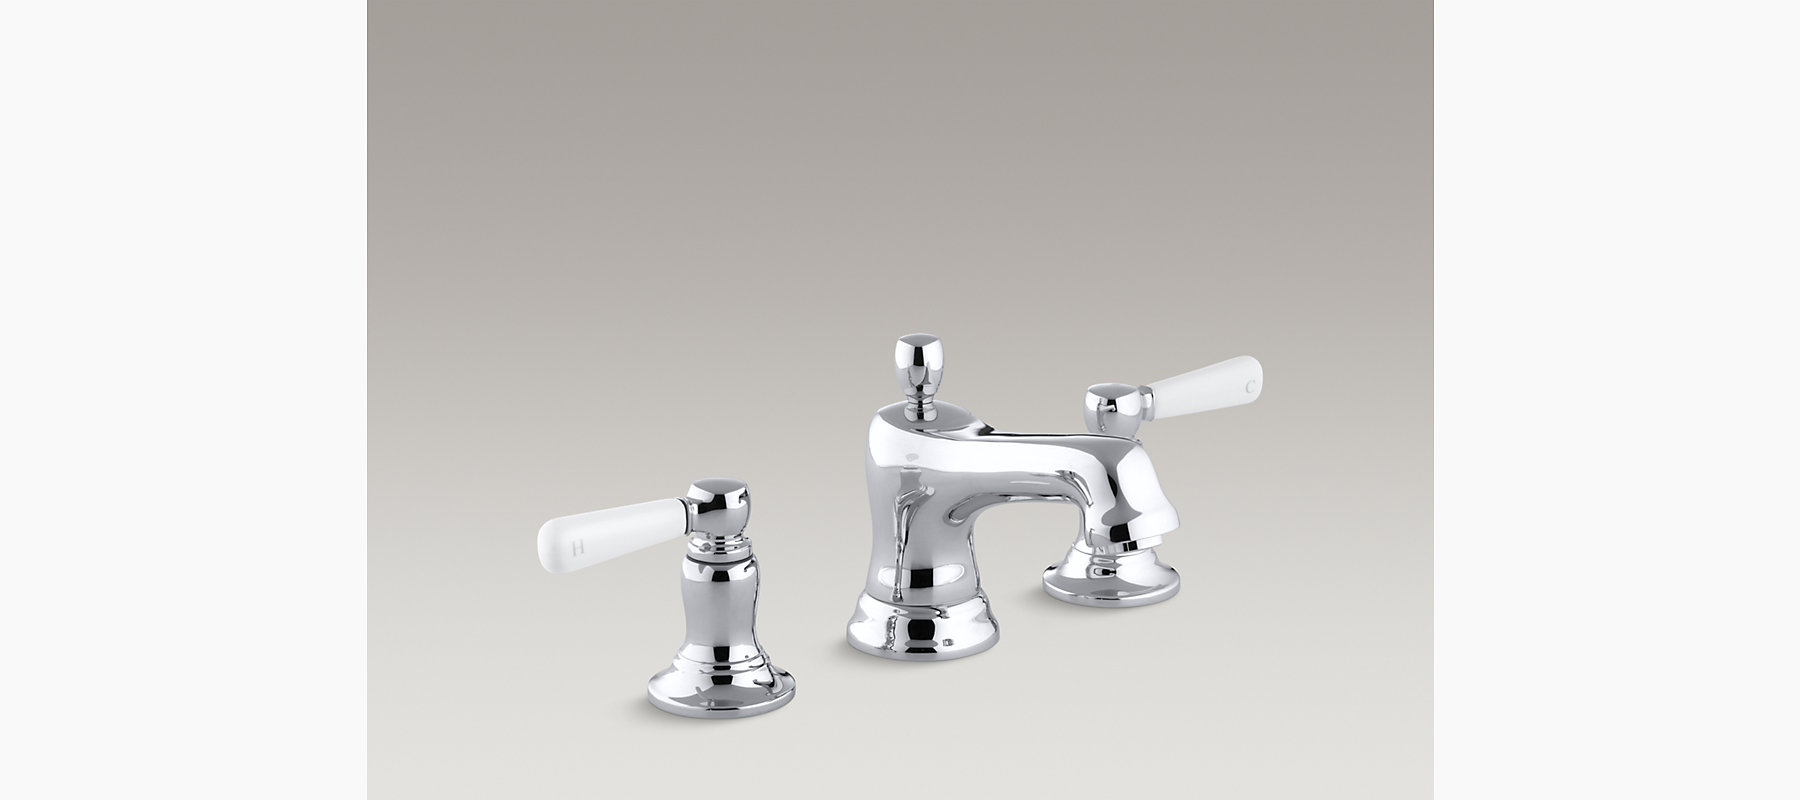 Bancroft widespread bathroom sink faucet with White ceramic lever ...